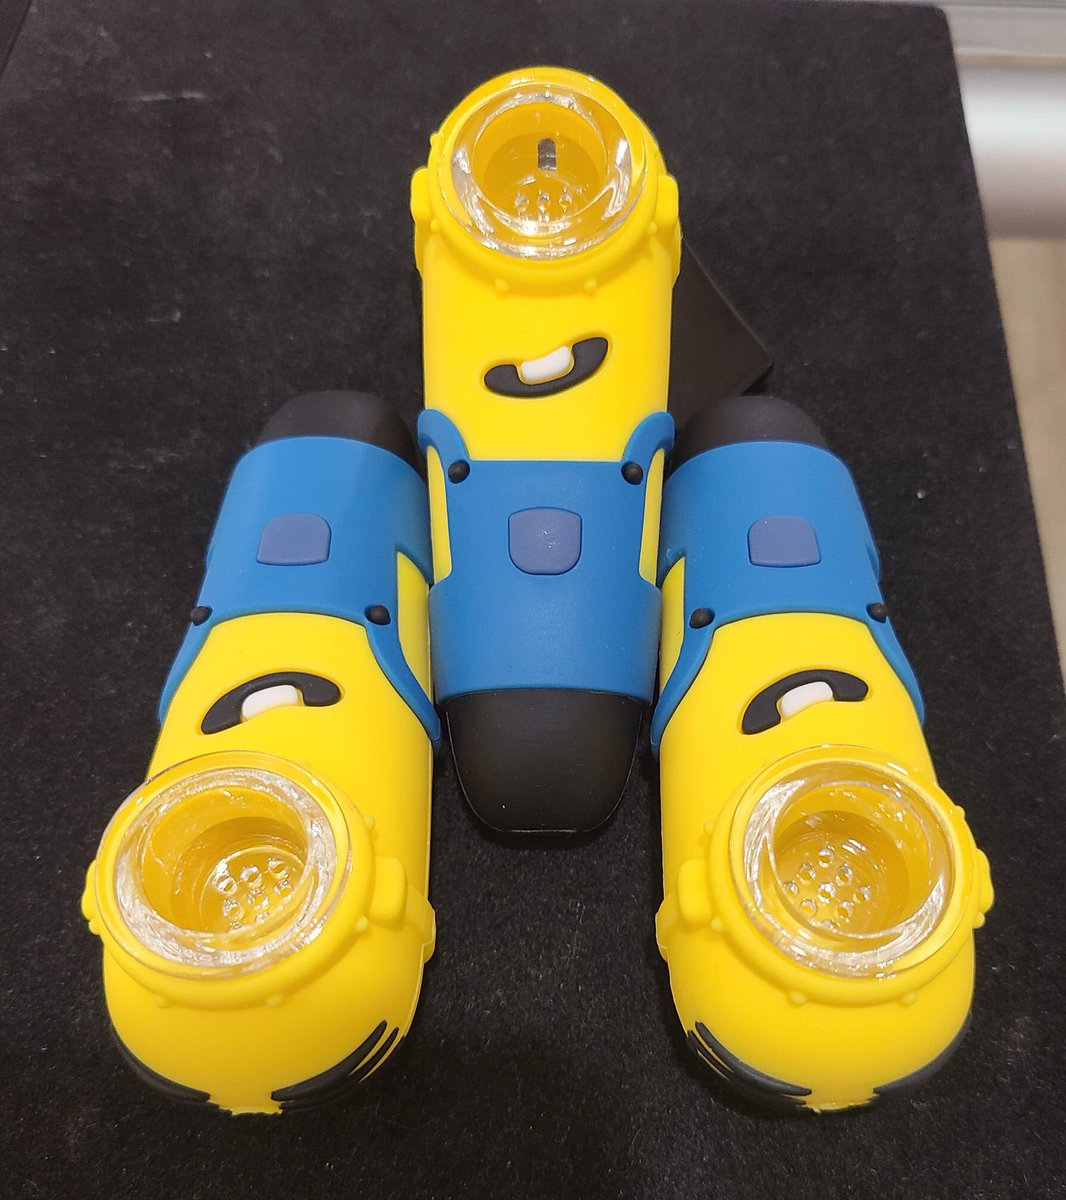 How cute are these silicone minion pipes??  #minions #siliconepipe #minionpipe #cutecharacters  #justcamein #shoplocal #getyoursstores #route302 https://t.co/oSFTuefMns